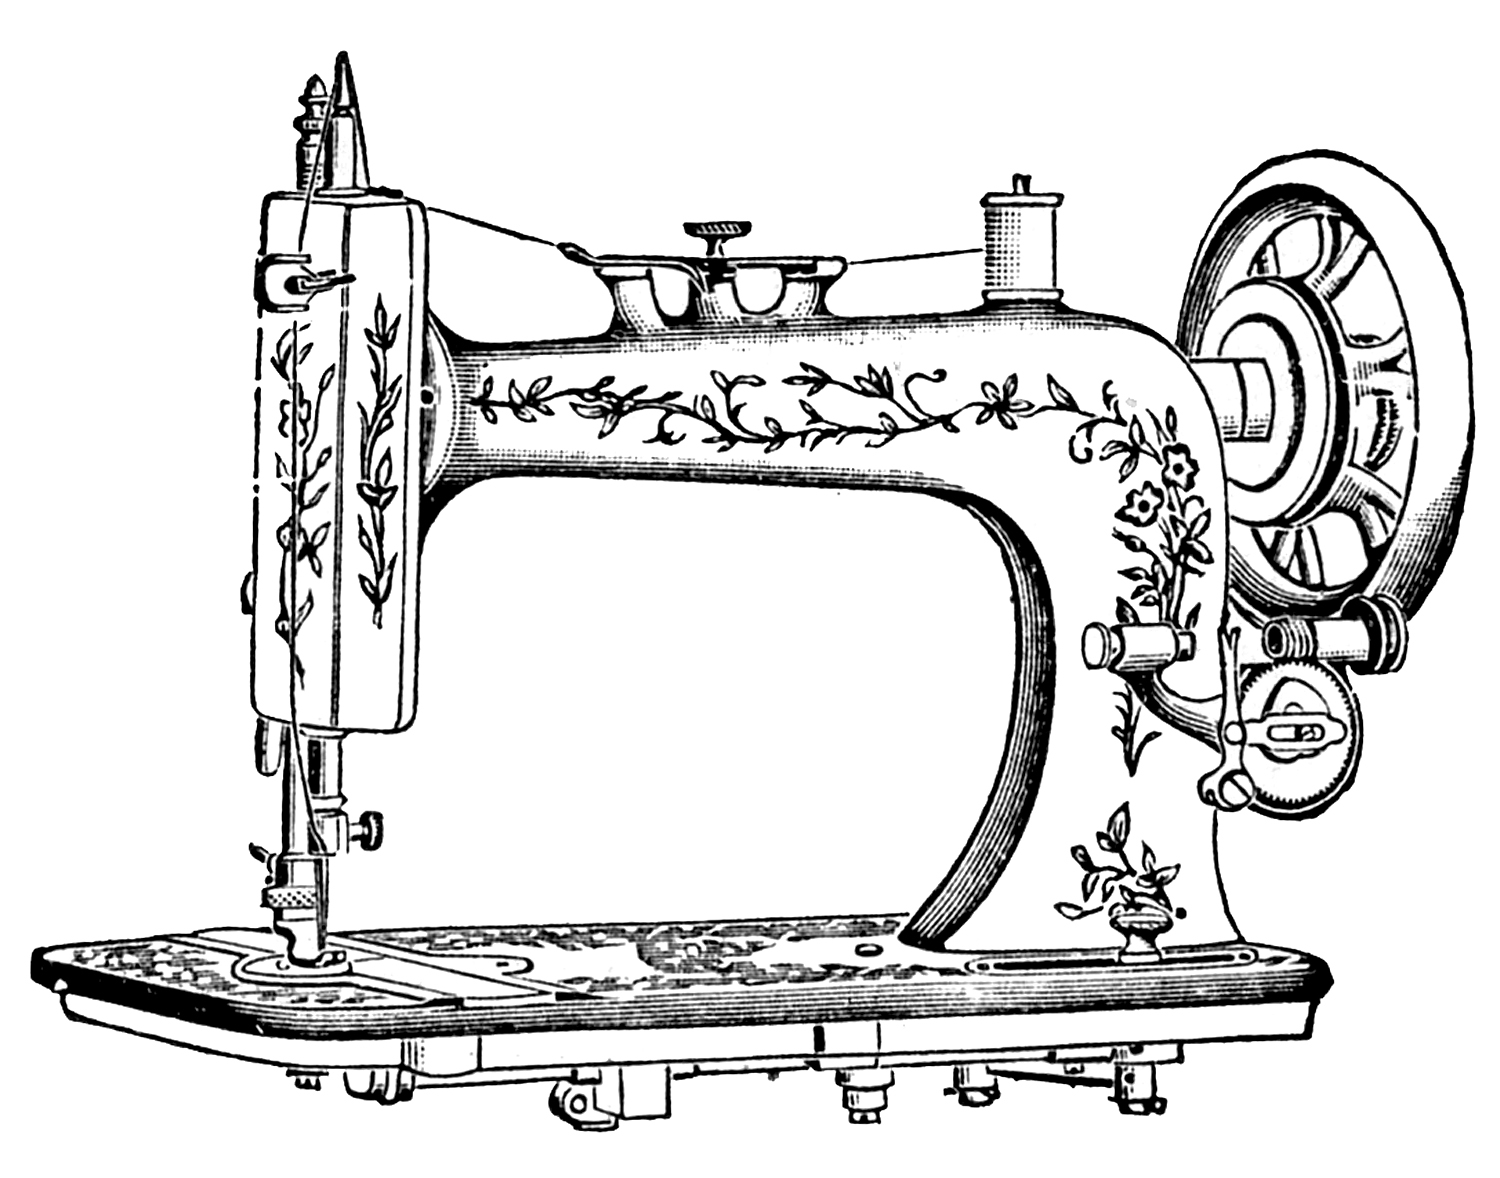 Sewing Machine clipart #3, Download drawings